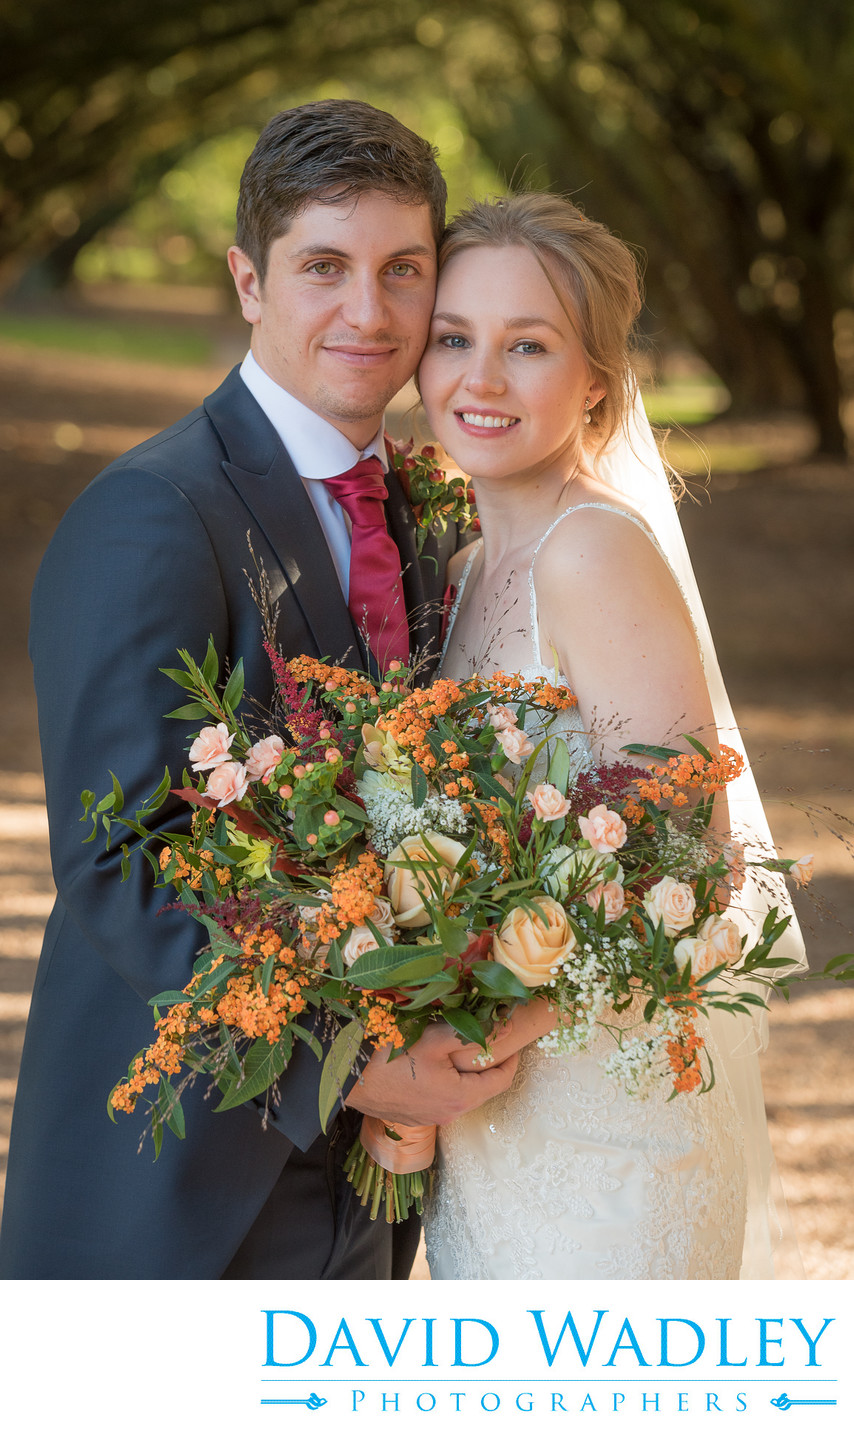 Wedding Photography at New Hall Hotel Sutton Coldfield.